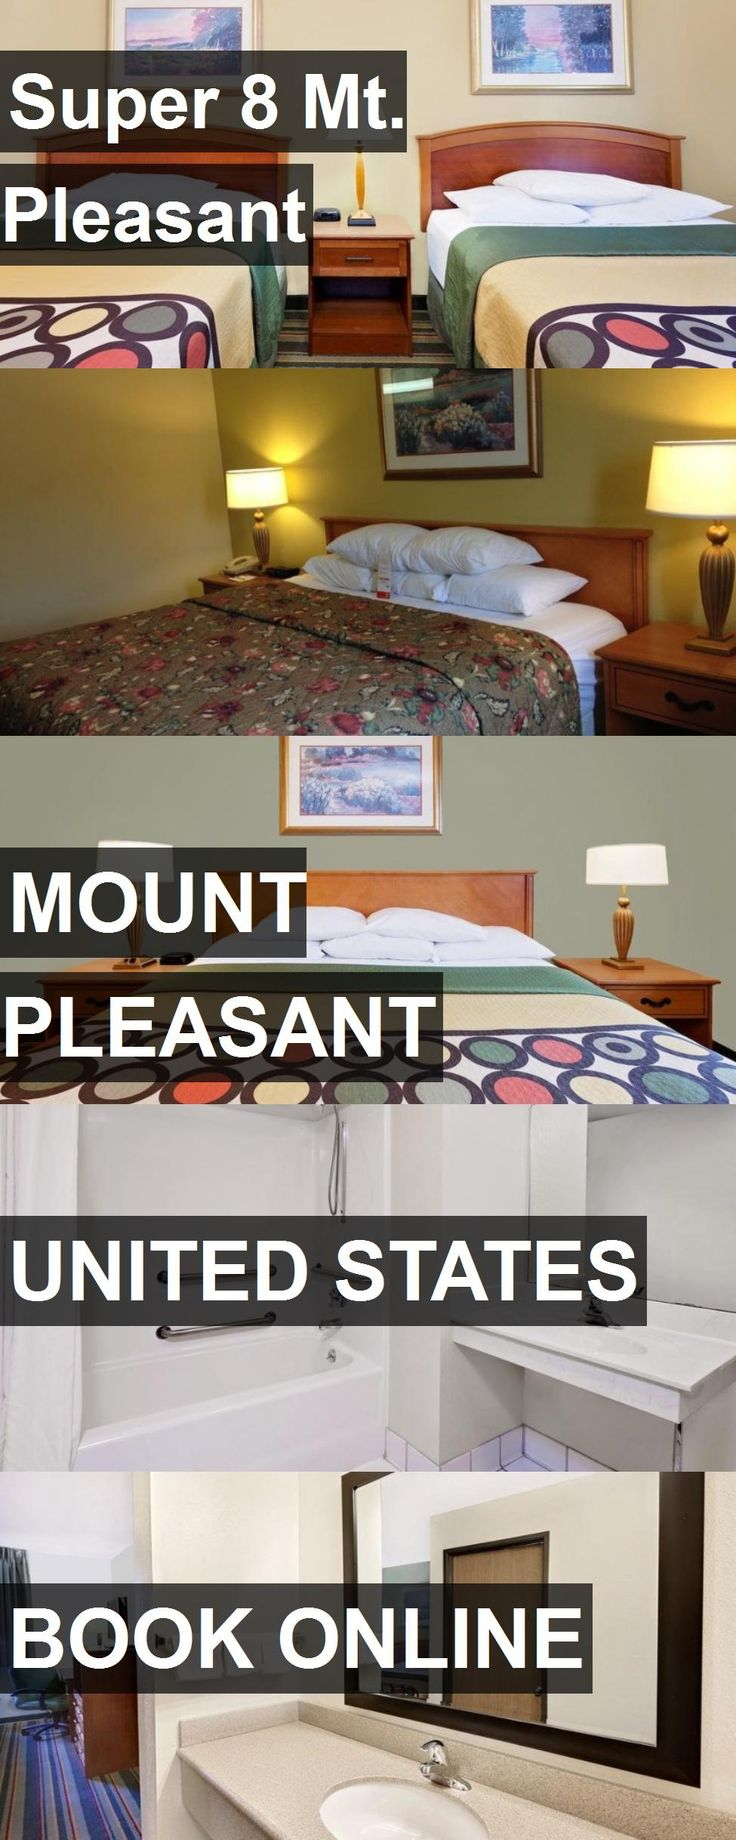 Hotel Super 8 Mt. Pleasant in Mount Pleasant, United States. For more information, photos, reviews and best prices please follow the link. #UnitedStates #MountPleasant #Super8Mt.Pleasant #hotel #travel #vacation